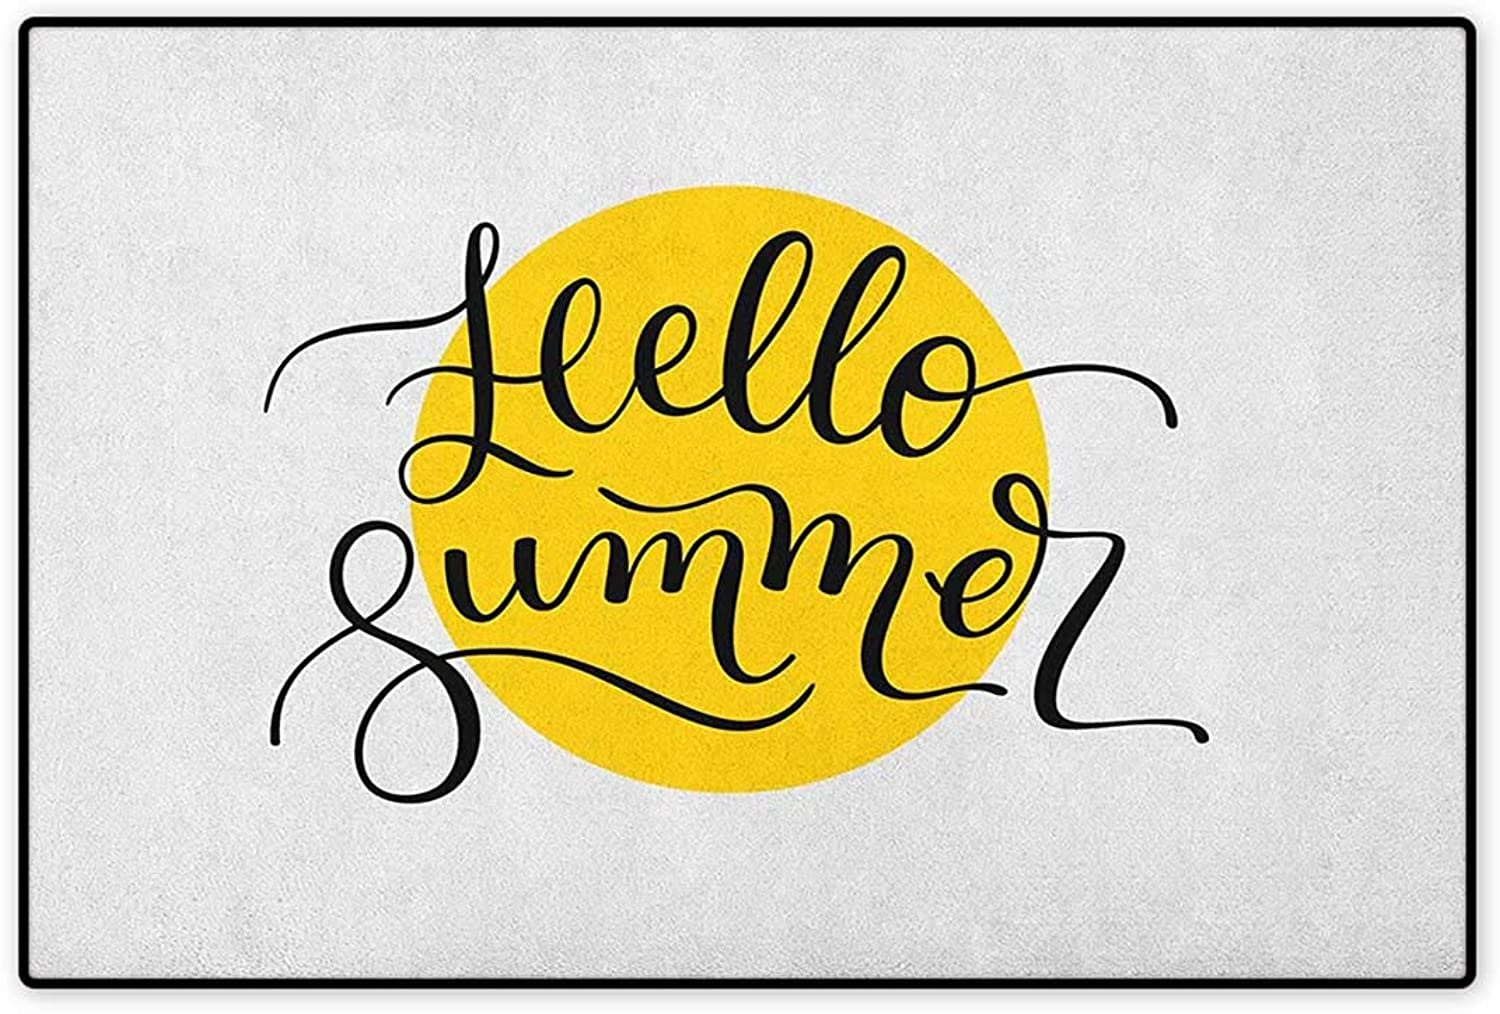 Hello Summer,Door Mat Indoors,Abstract Retro Style Lettering in Black Font Across a Round Shape in Yellow,Indoors Doorroom Mats Non Slip,Mustard Black,Size,32 x48  (W80cm x L120cm)